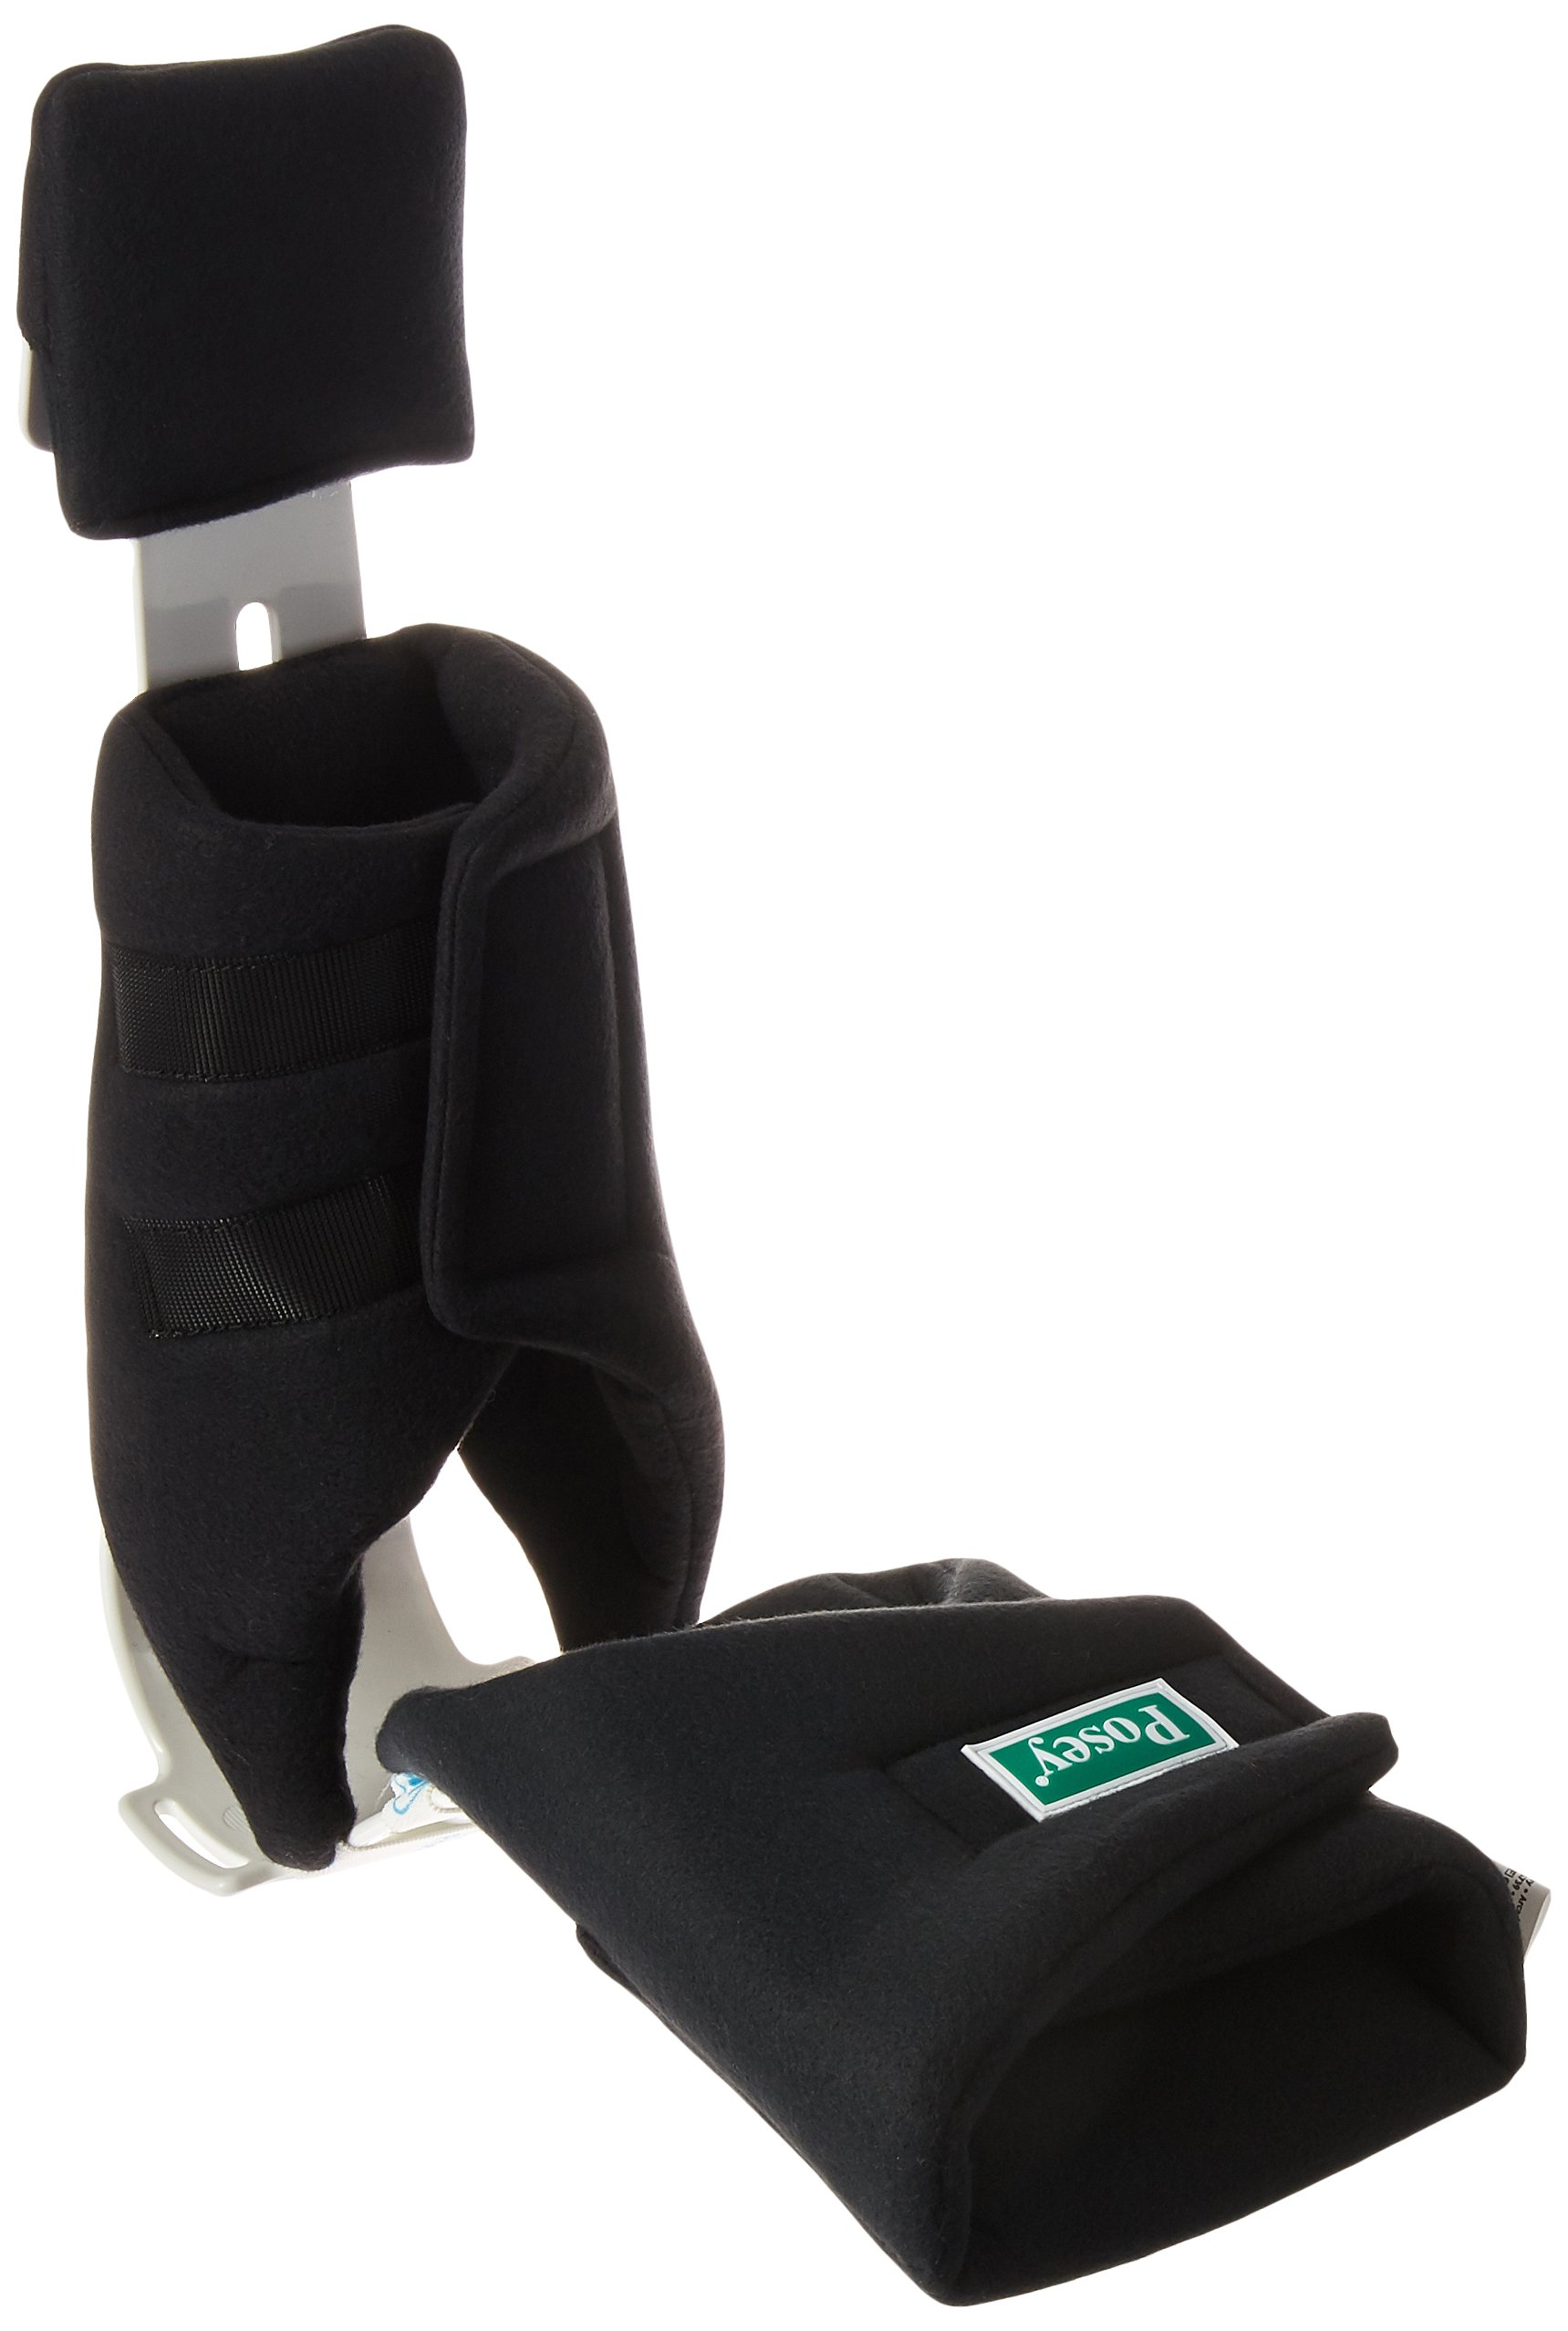 Posey 6147SM Deluxe Podus Boot, Small-Med by Posey